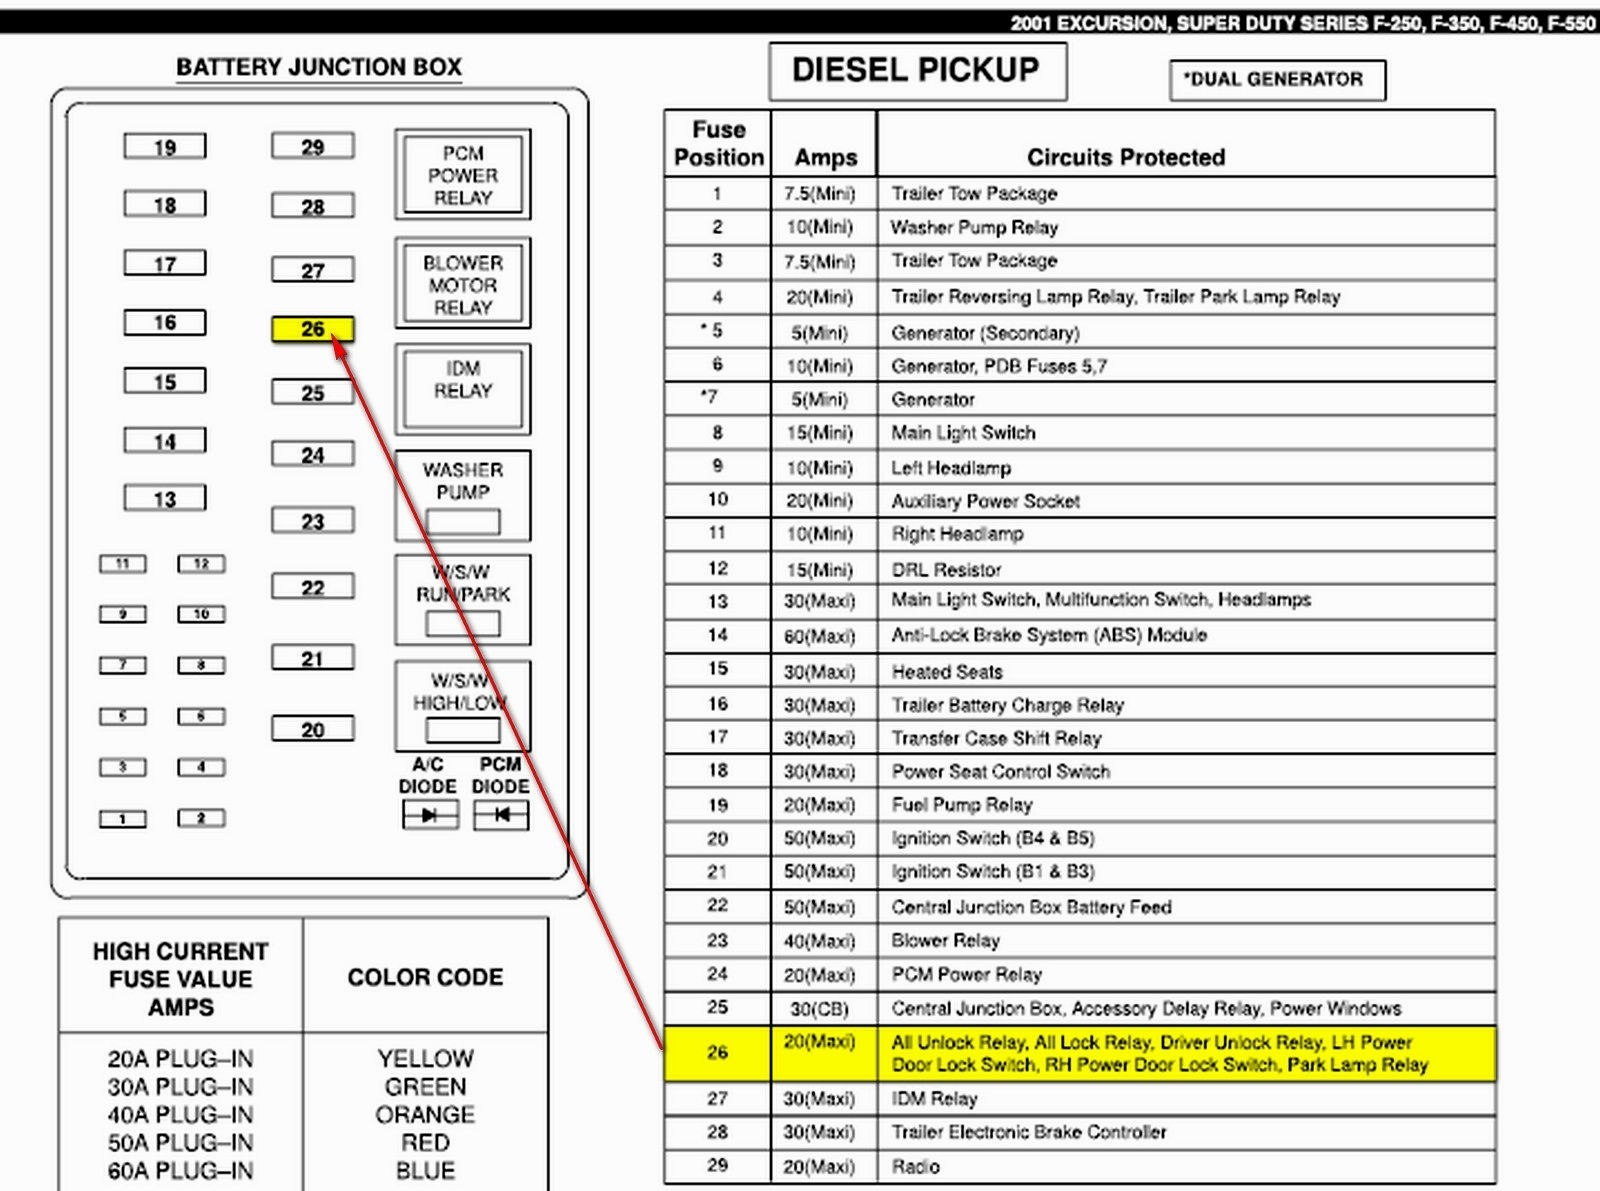 2004 Ford Expedition Fuel Pump Wiring Diagram from static-cdn.imageservice.cloud